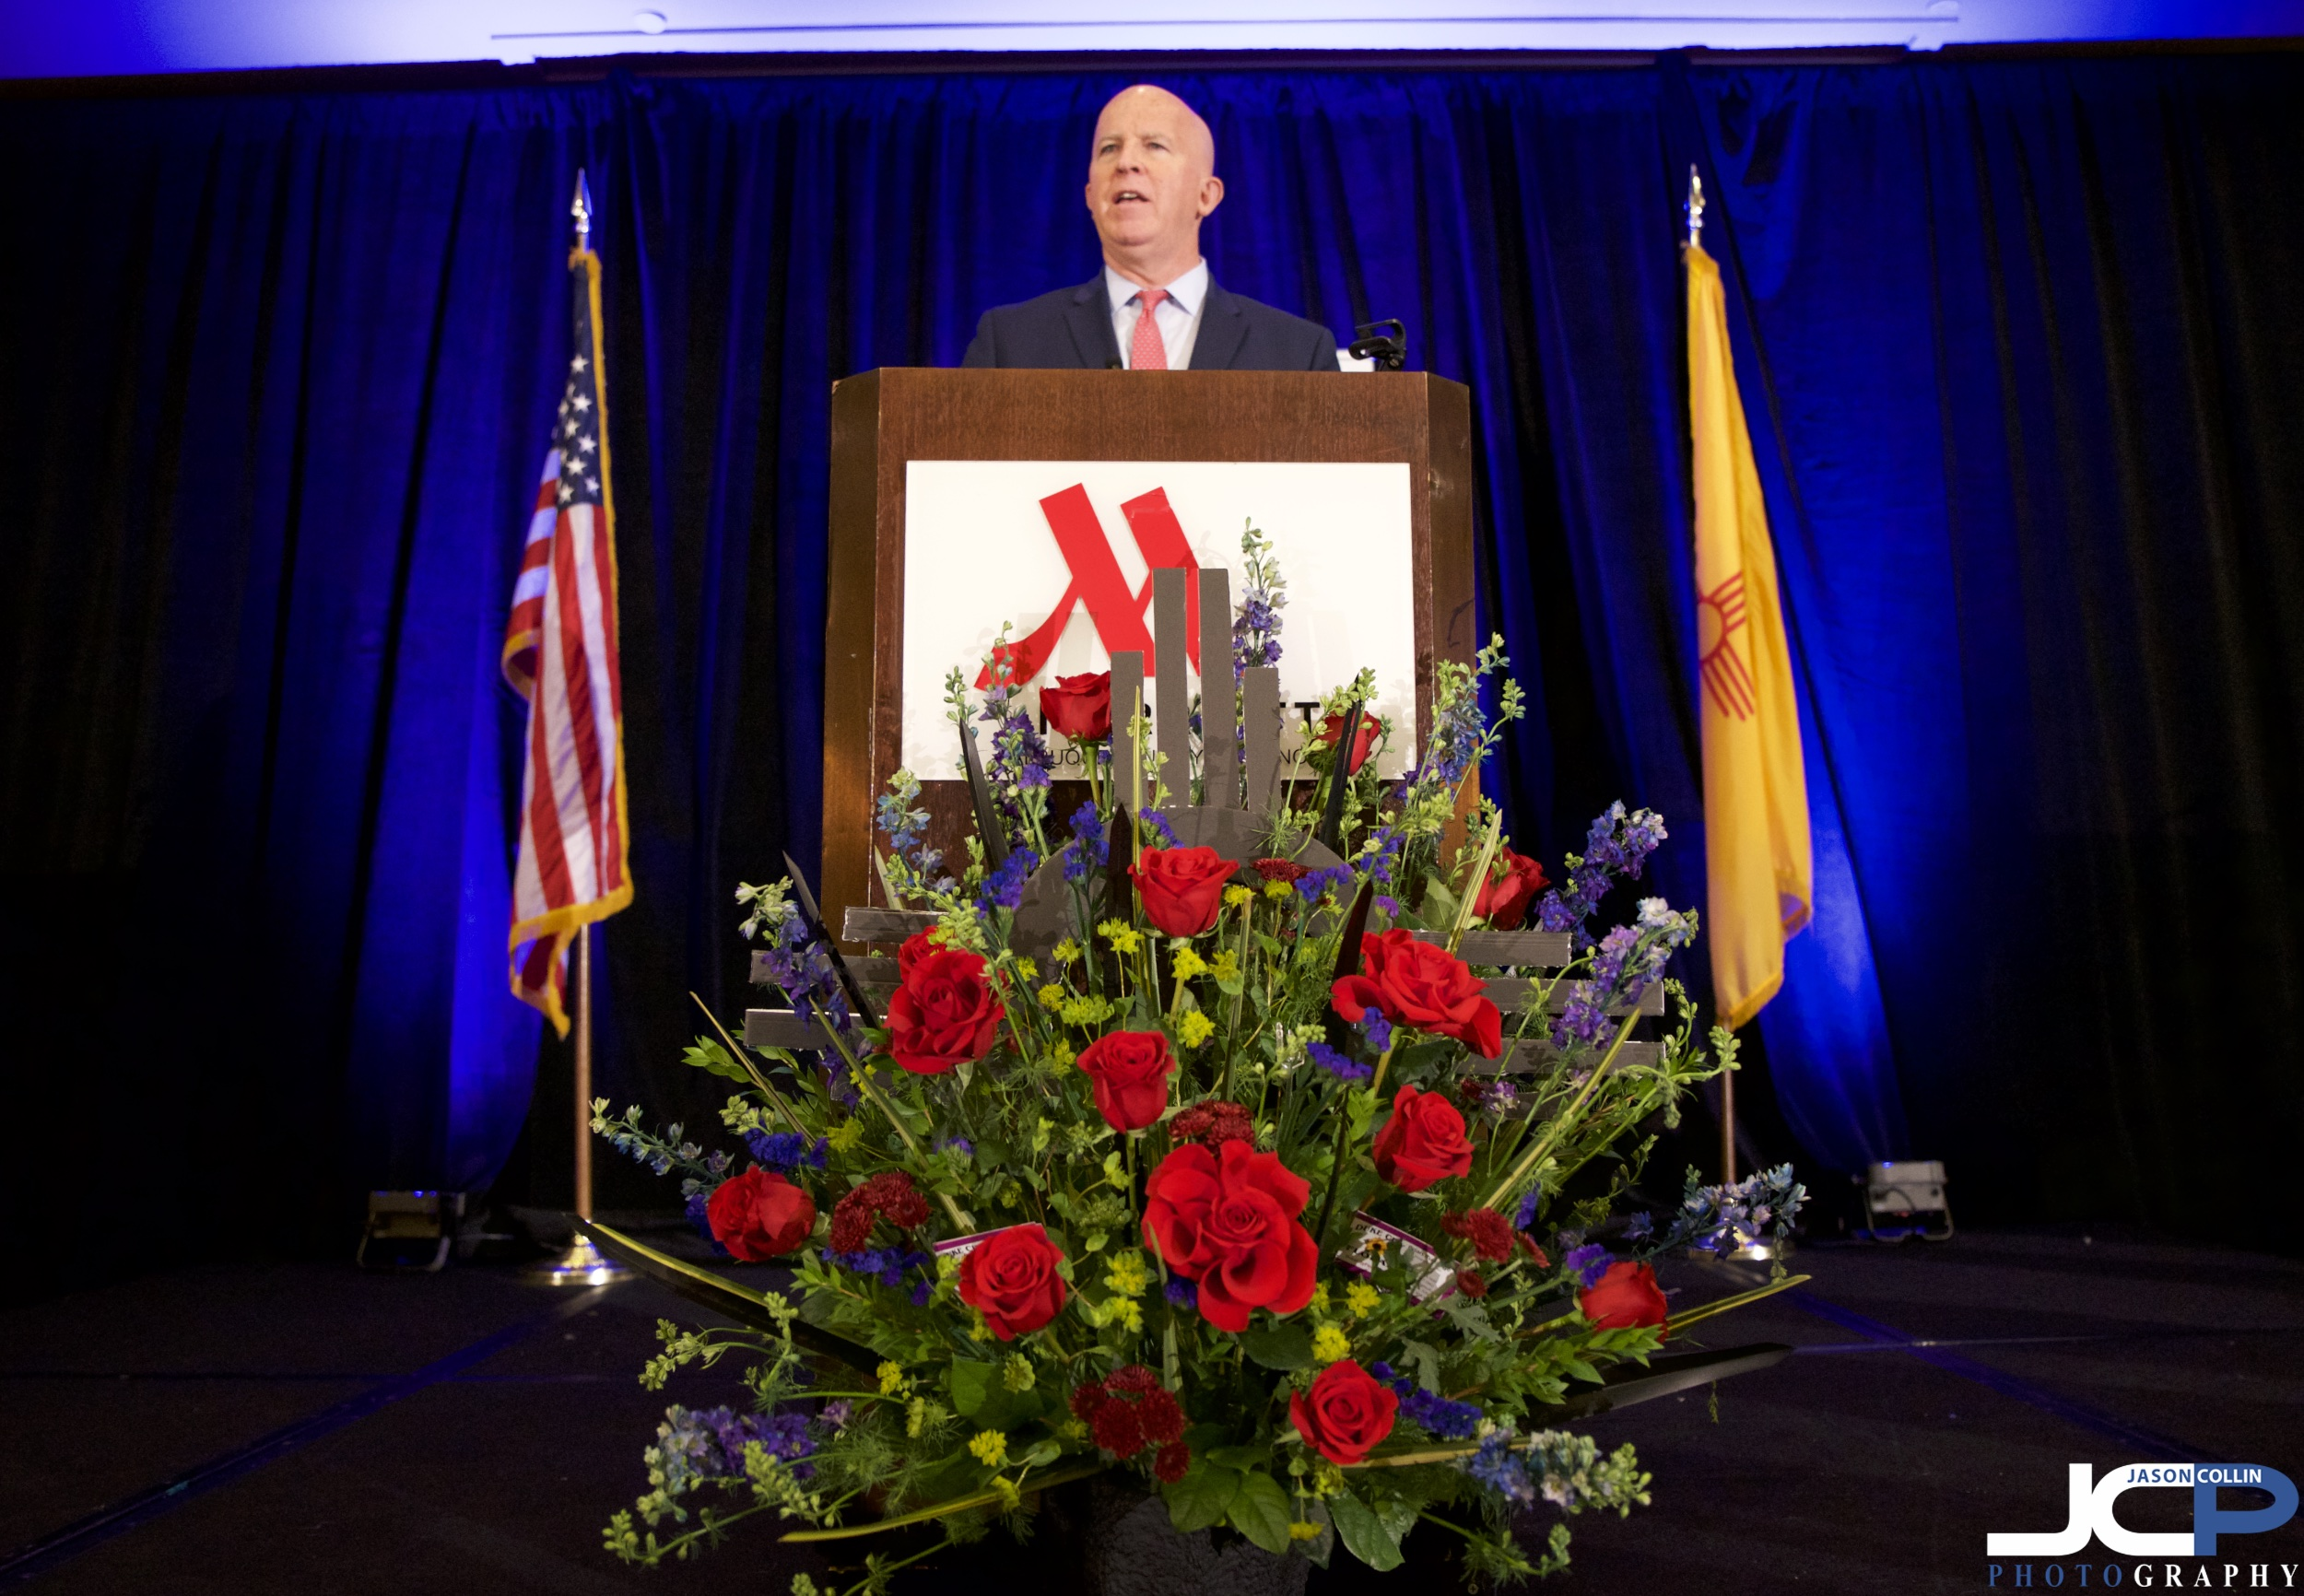 New York City Police Commissioner James P. O'Neill speaking in Albuquerque, New Mexico